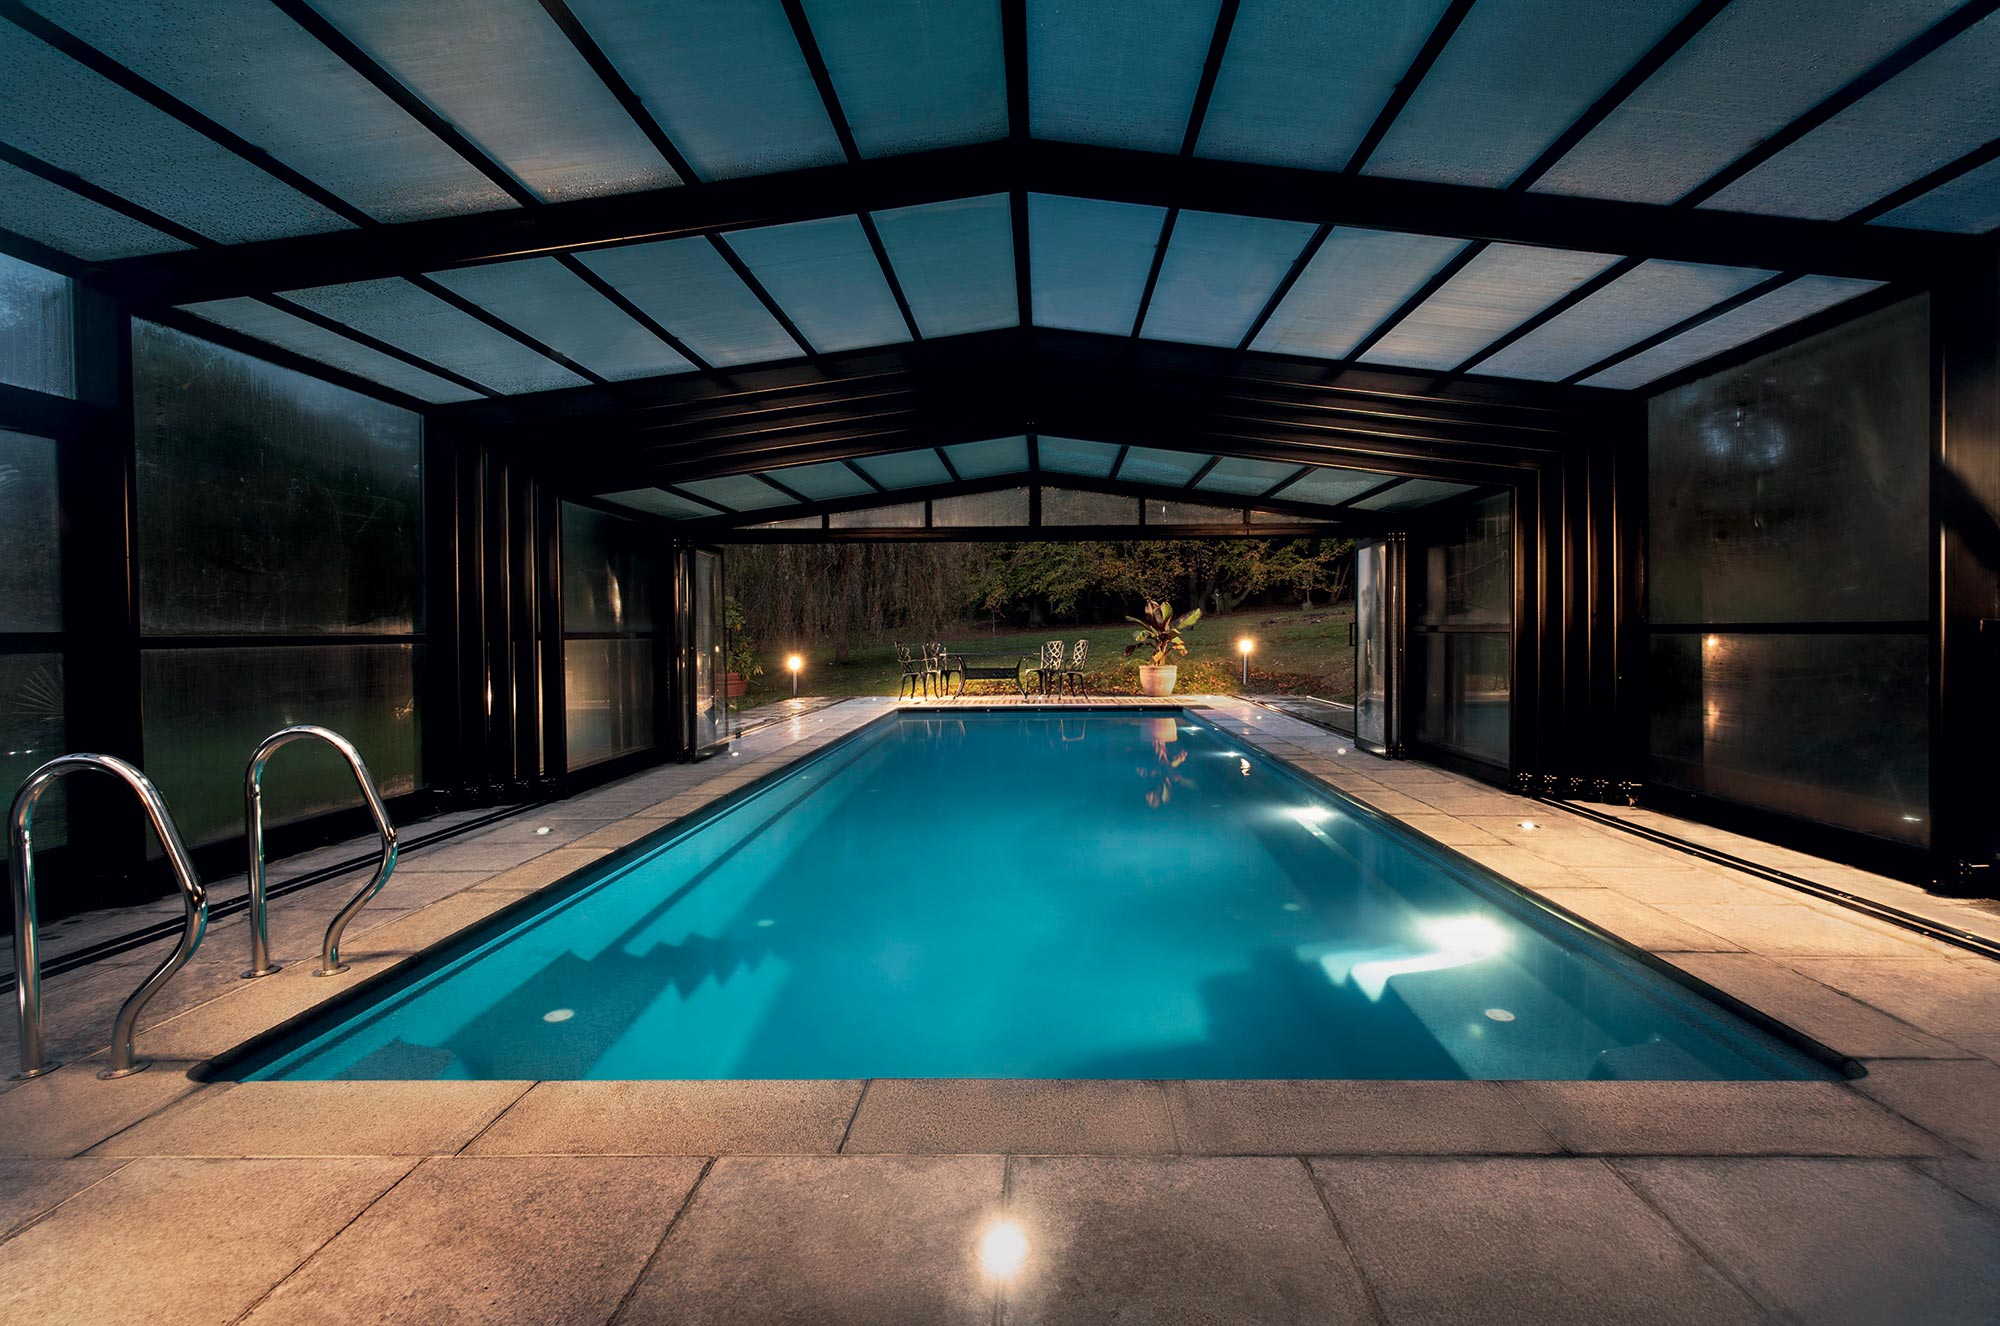 6 Ways To Take Care of your Swimming Pool